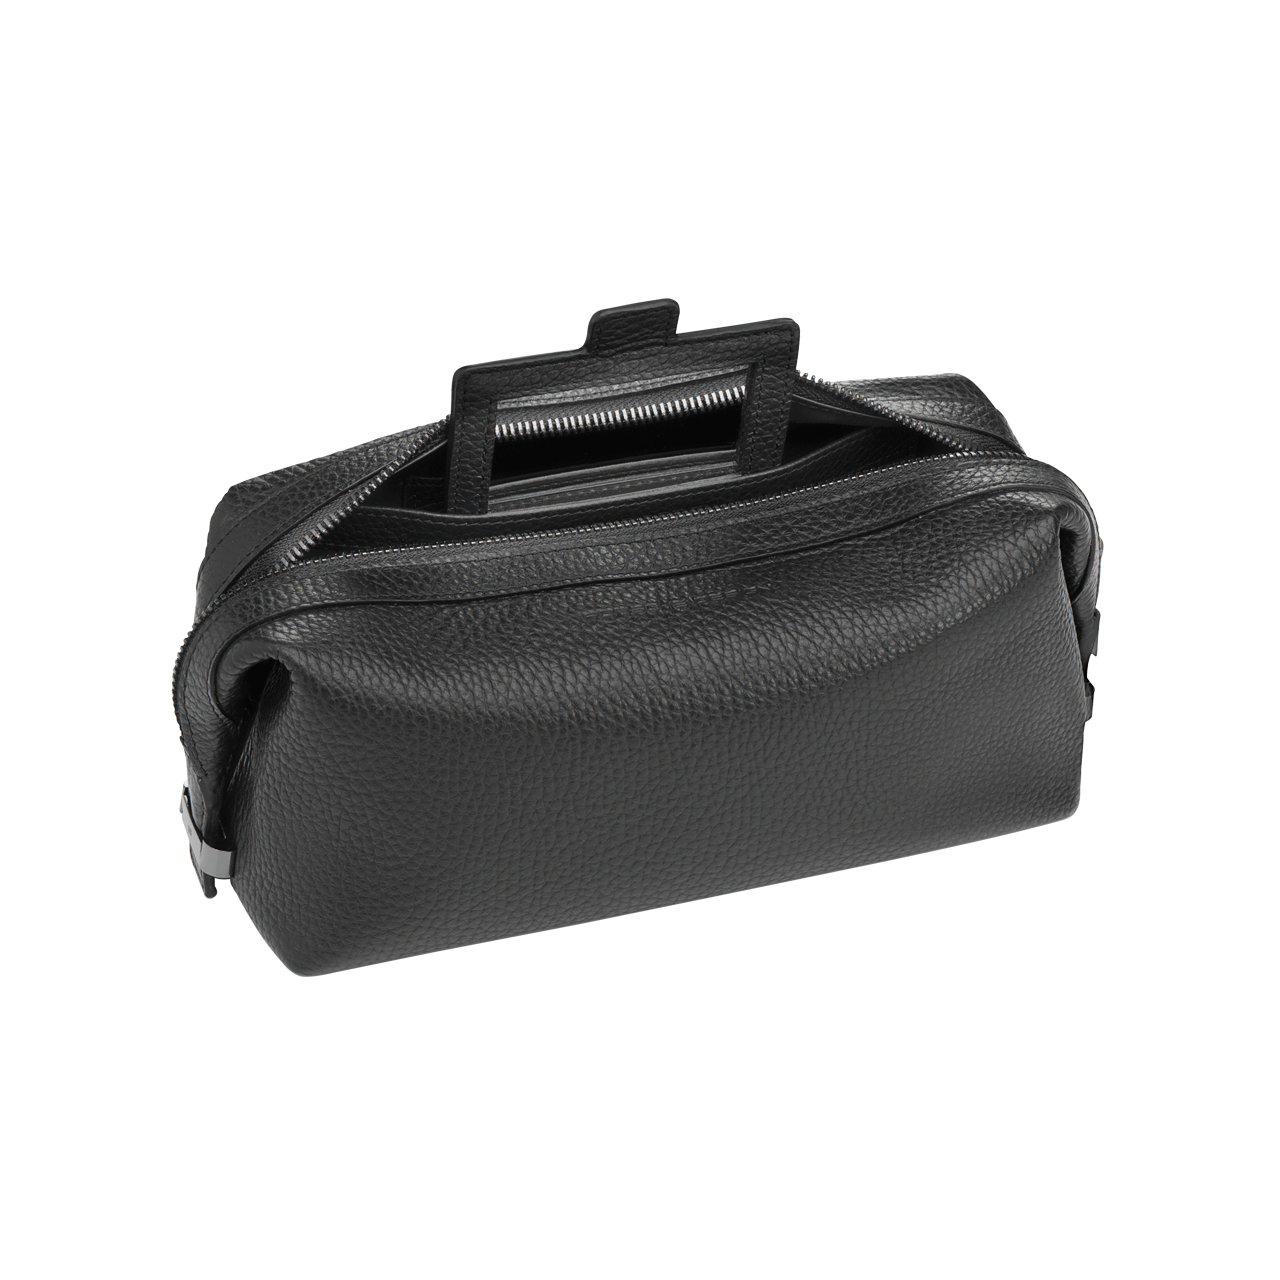 COSMETIC POUCH - фото 2